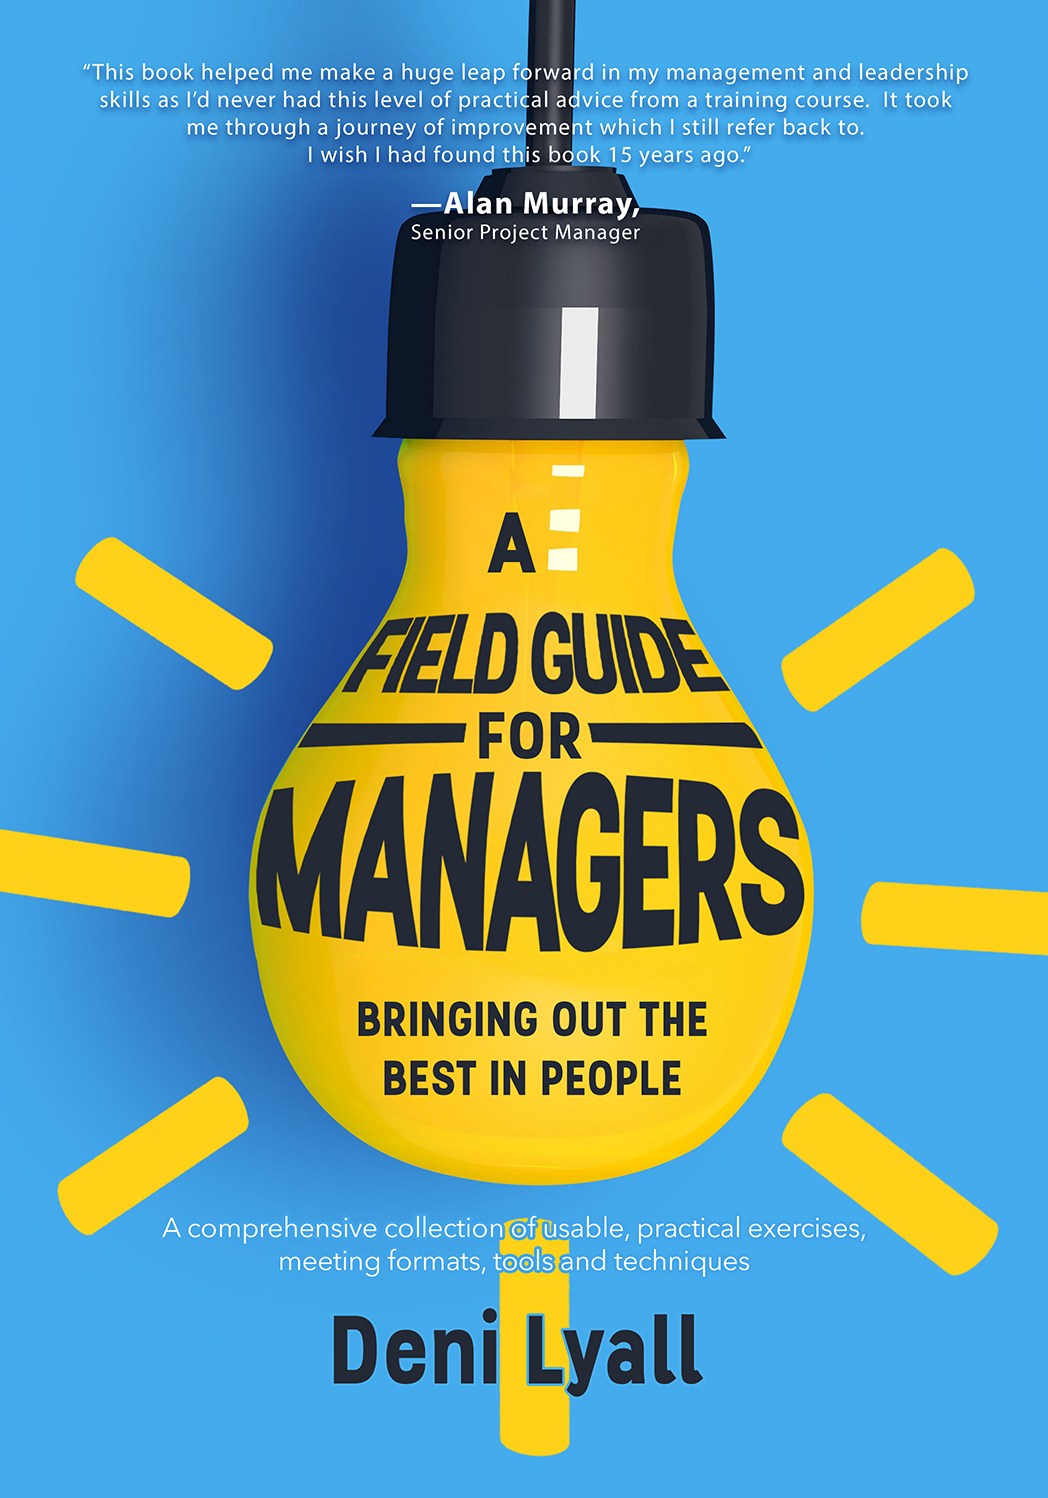 A Field Guide for Managers: bringing out the best in people